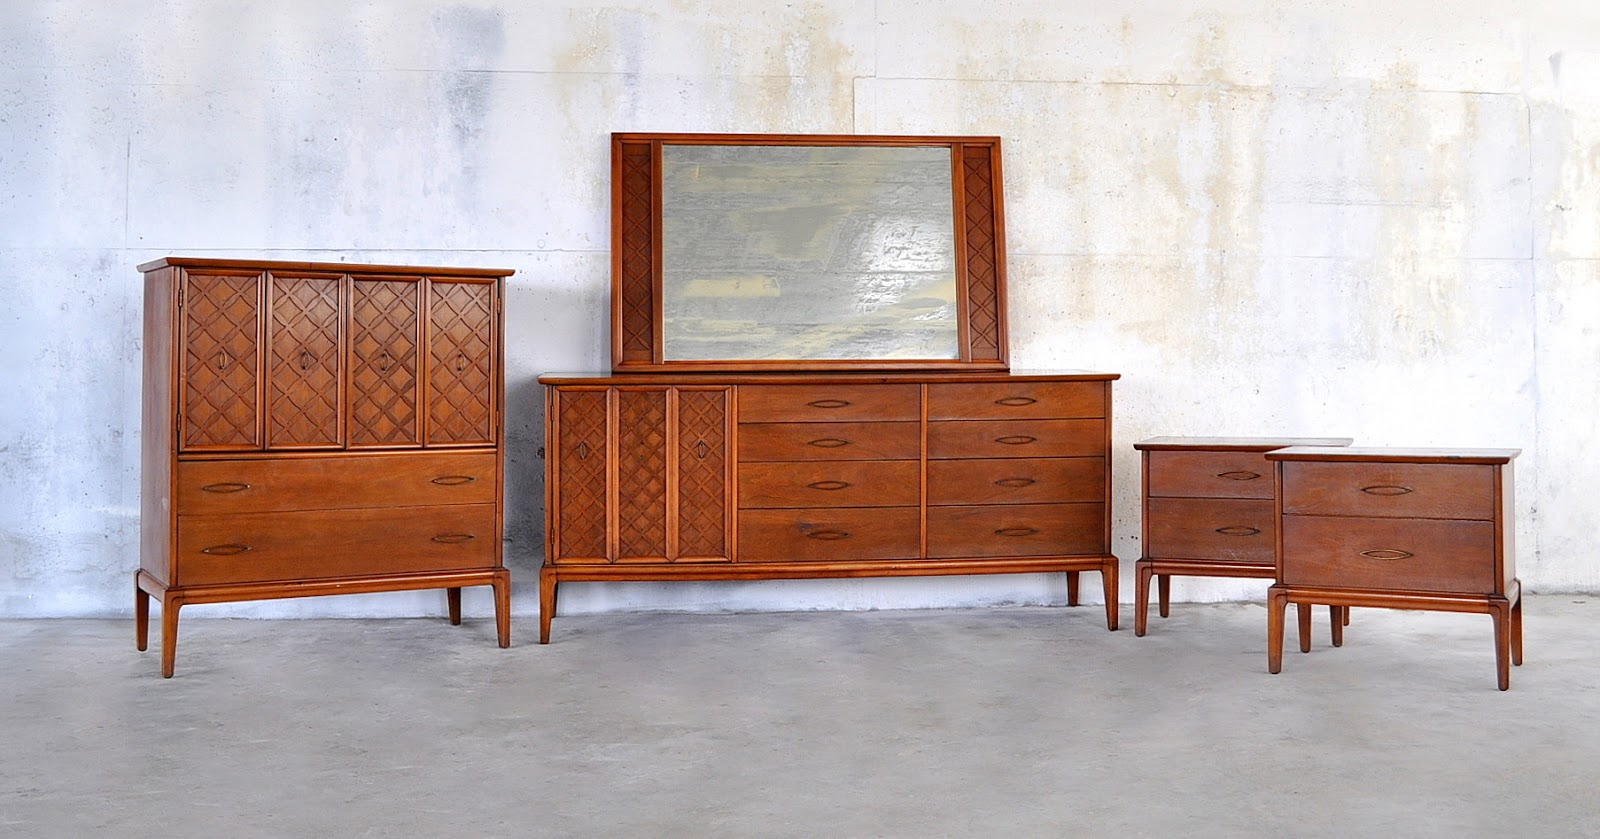 awesom triple mid century design with a big mirror and some carving motif